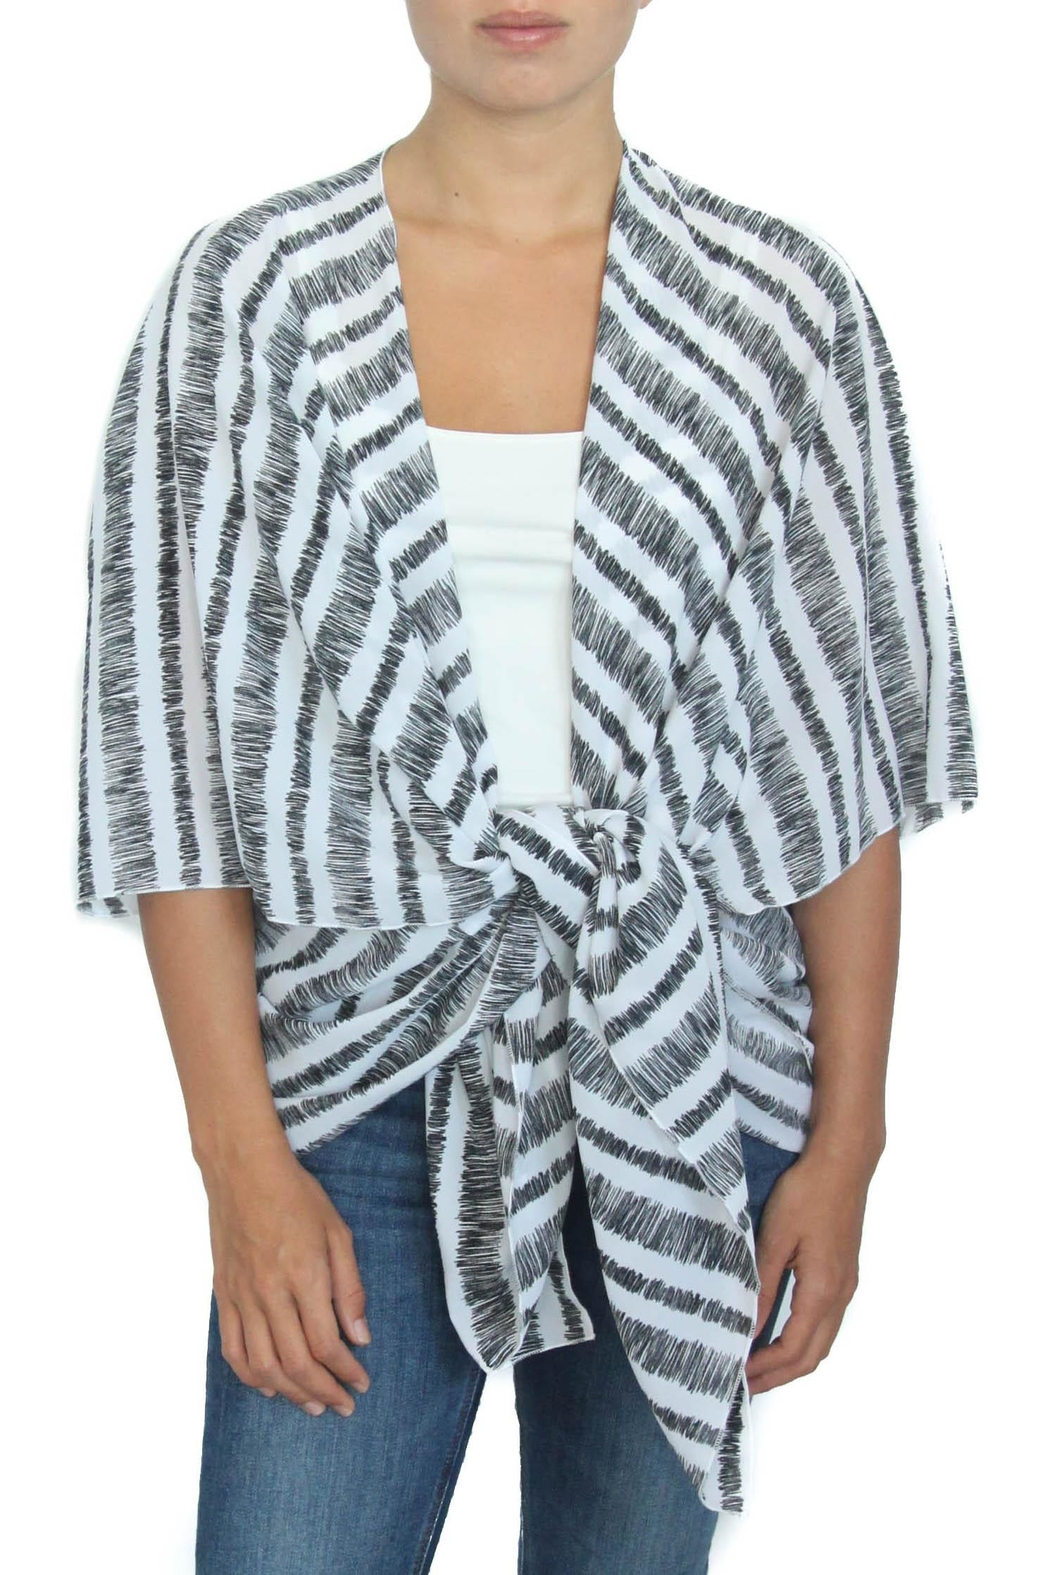 LOVEleigh Mystery Color Kimono - Front Cropped Image